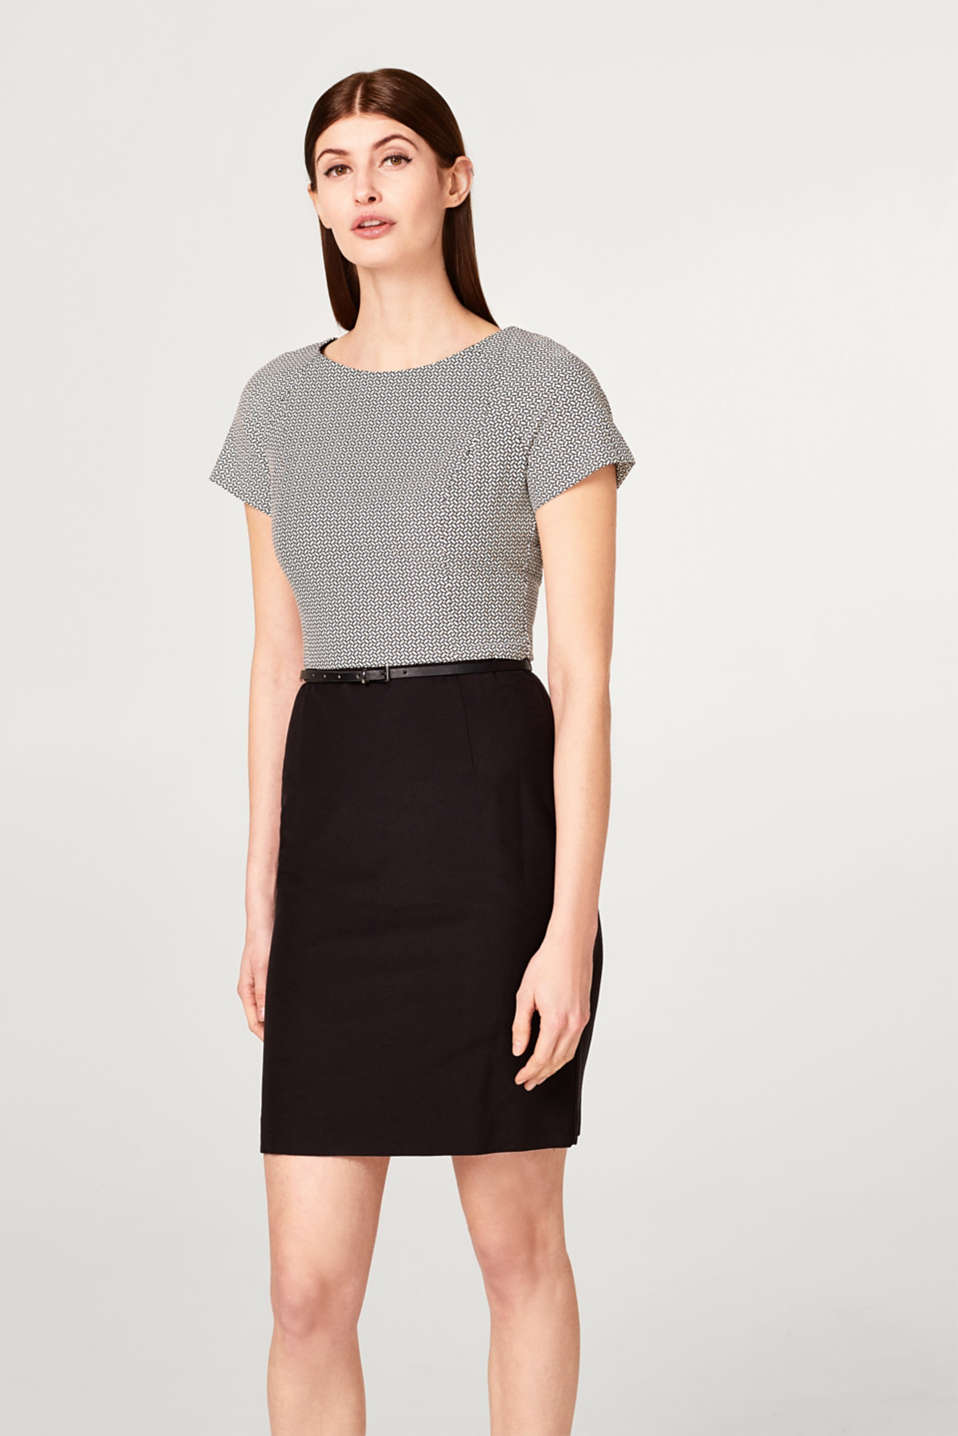 Esprit - Super stretchy sheath dress with a belt